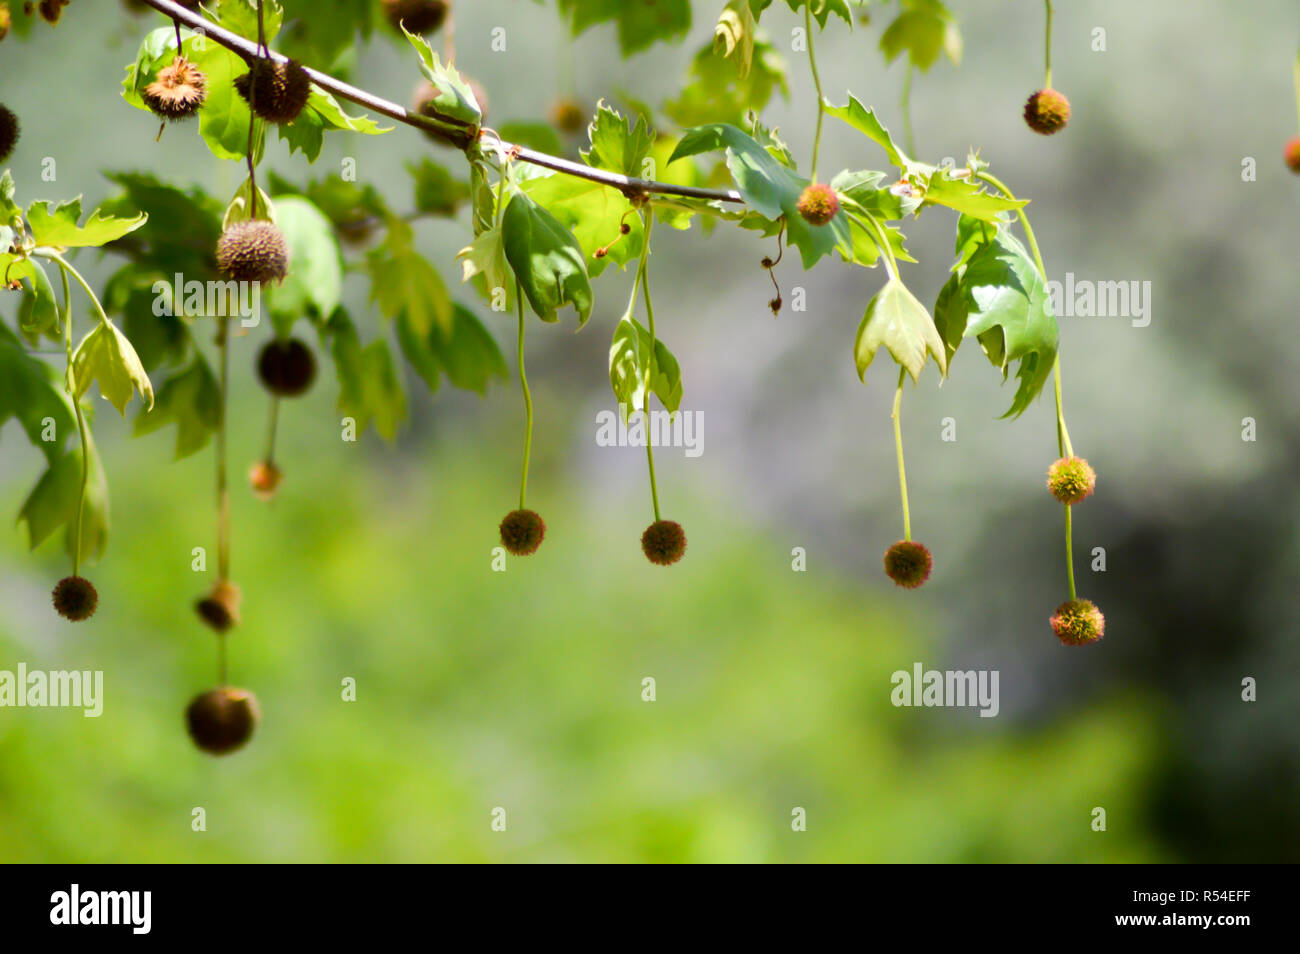 Chestnuts hanging from branches Stock Photo